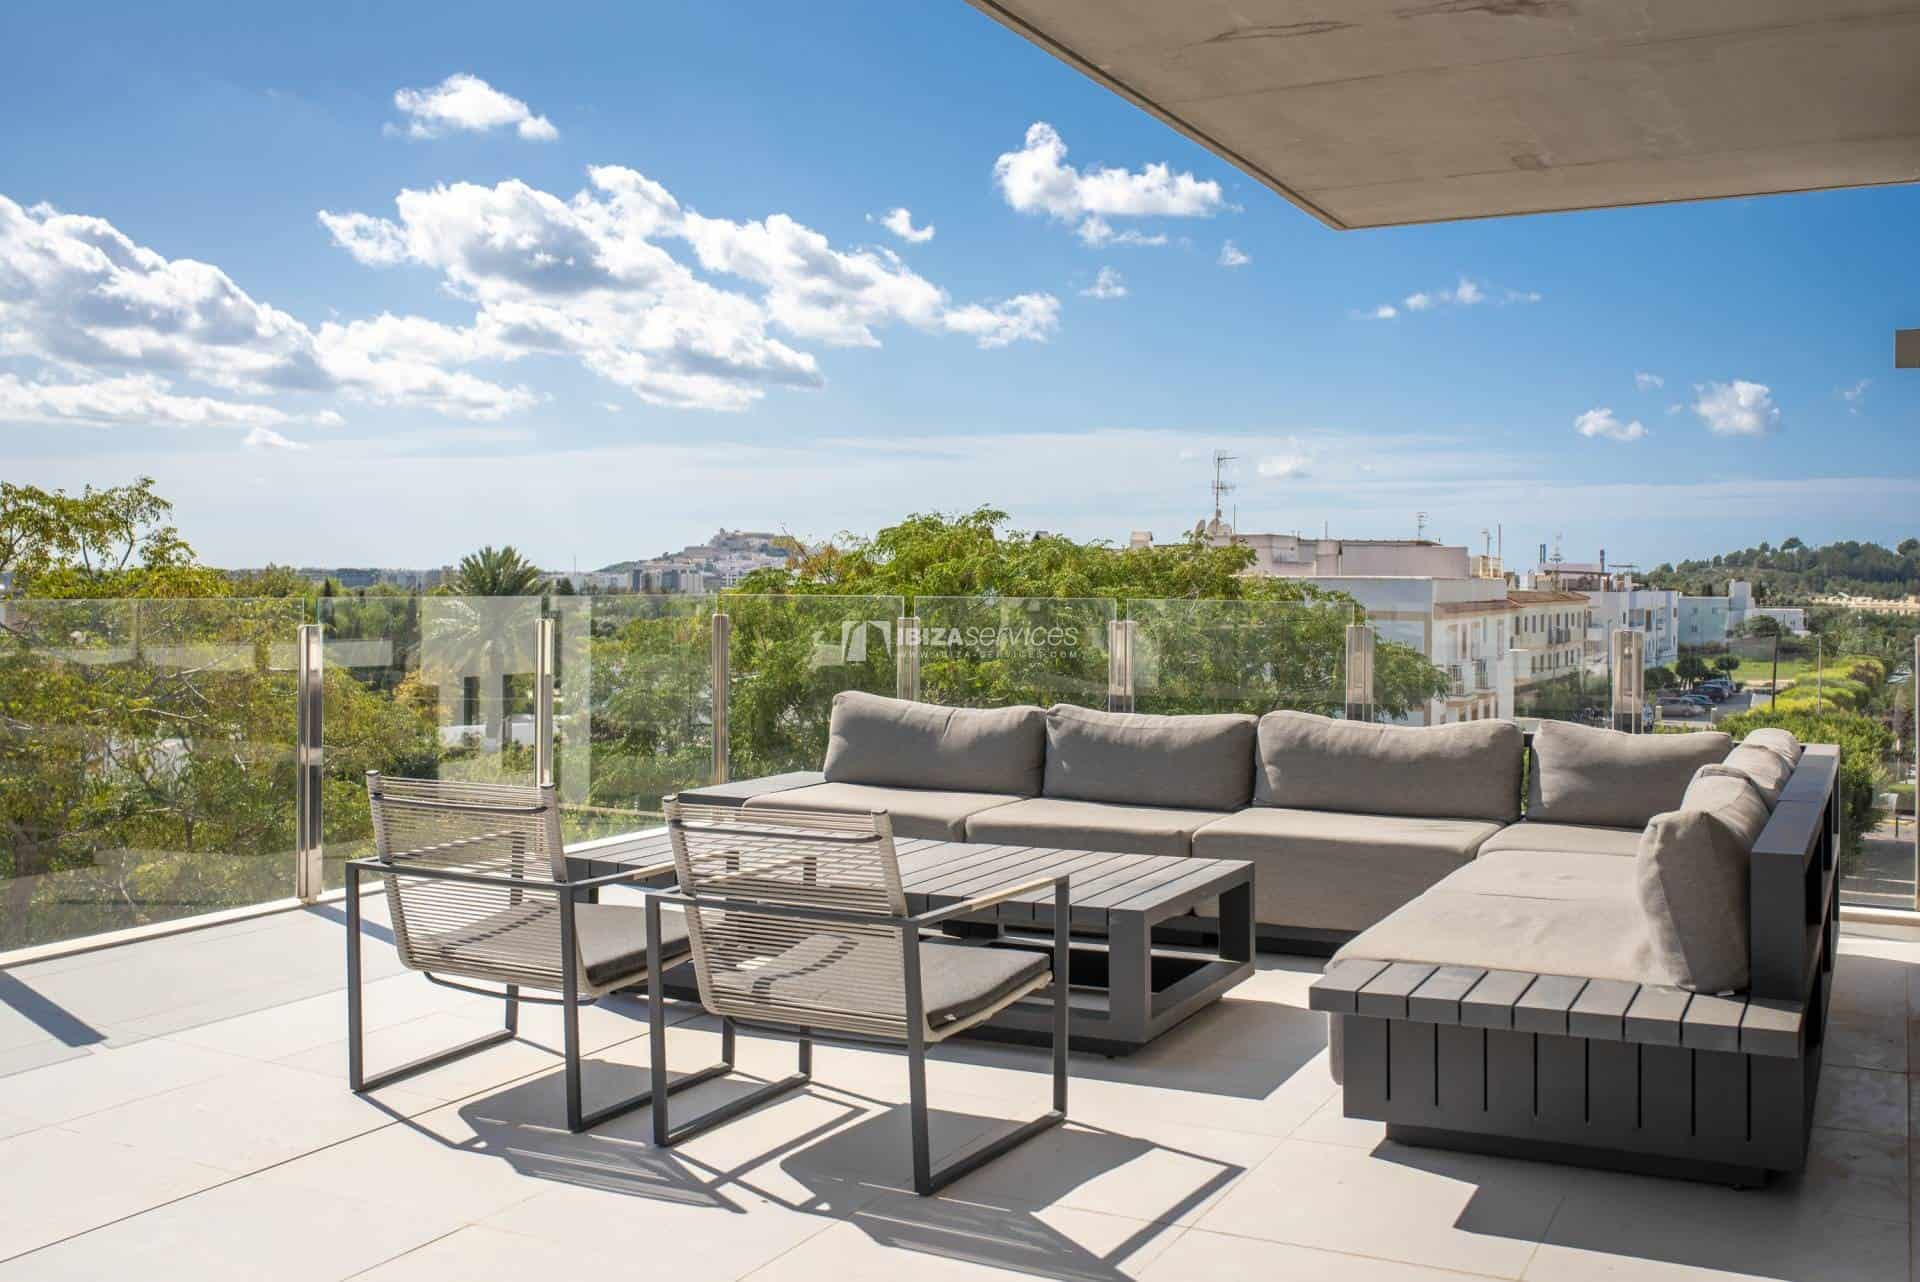 Modern penthouse 4 bedrooms for sale Jesus perspectiva 1